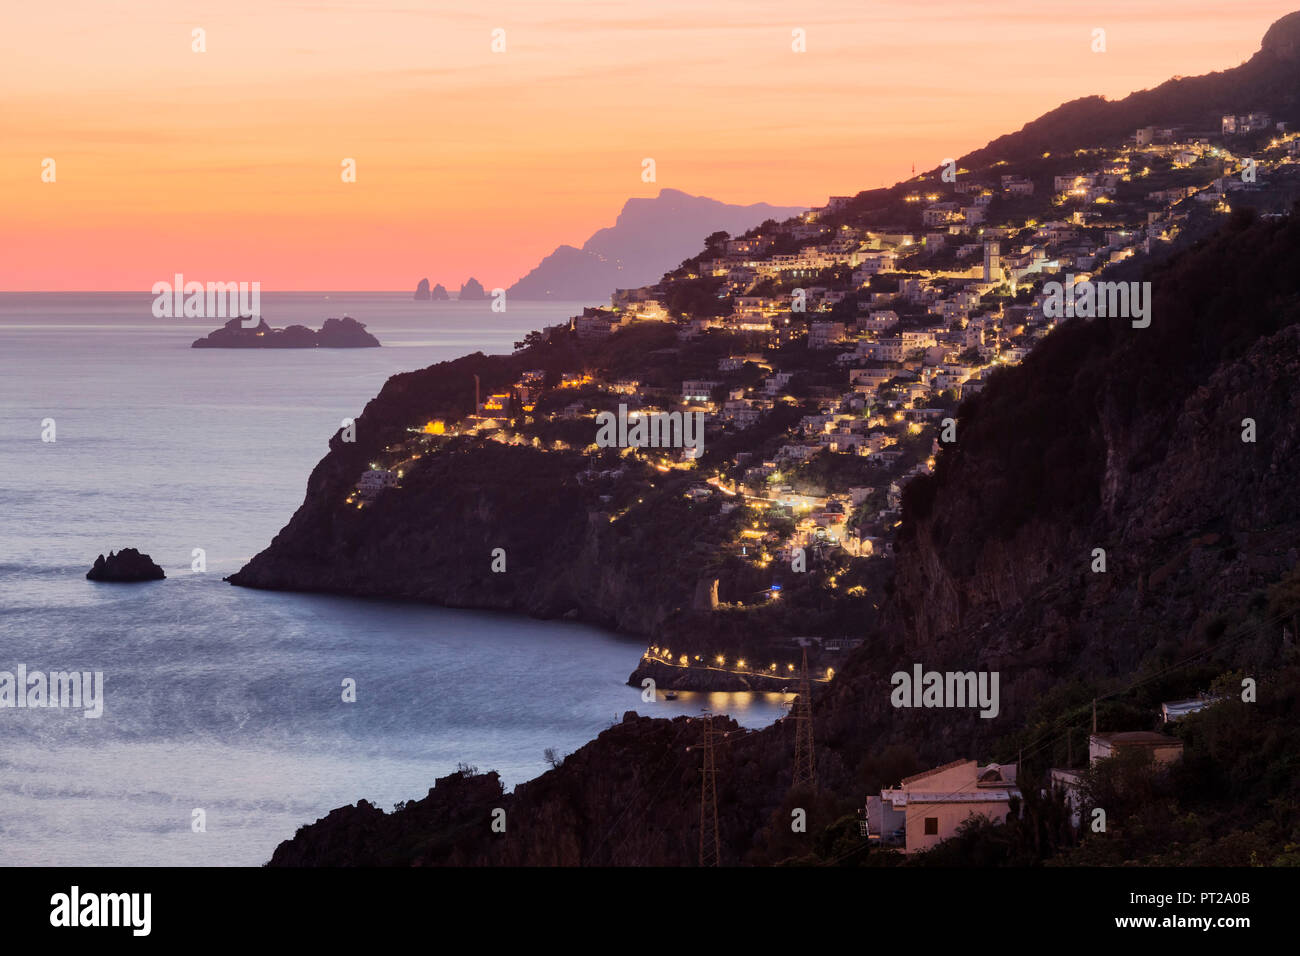 Praiano at dusk from Conca dei Marini, Salerno province, Campania, Italy, Europe - Stock Image